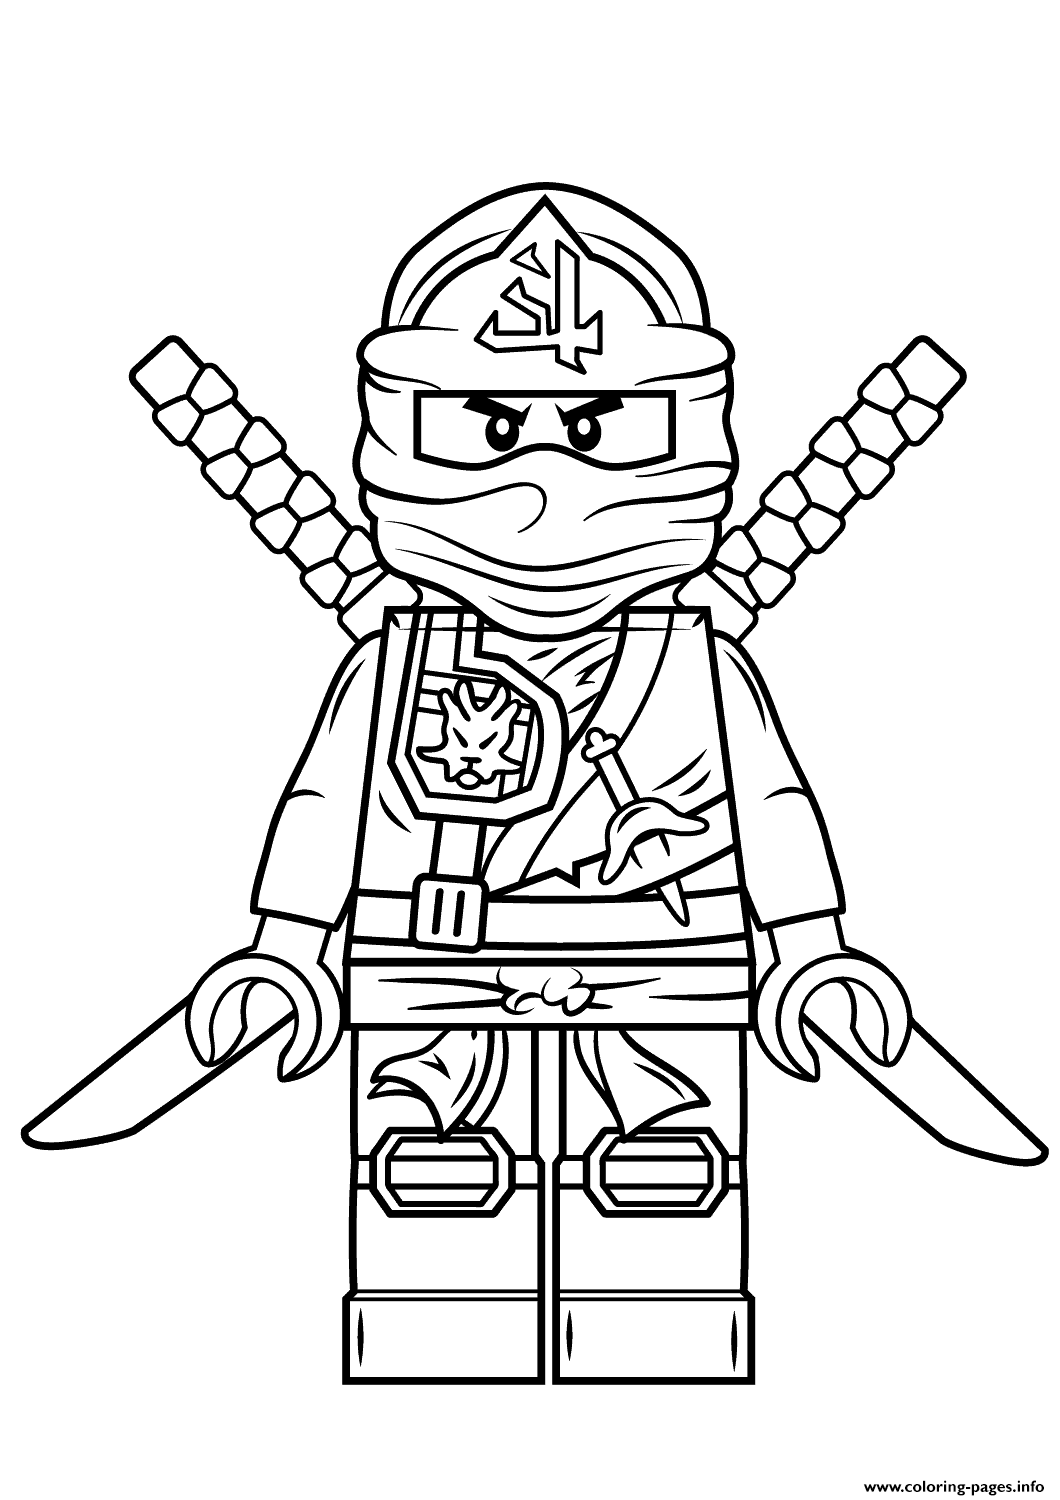 print lego ninjago green ninja coloring pages